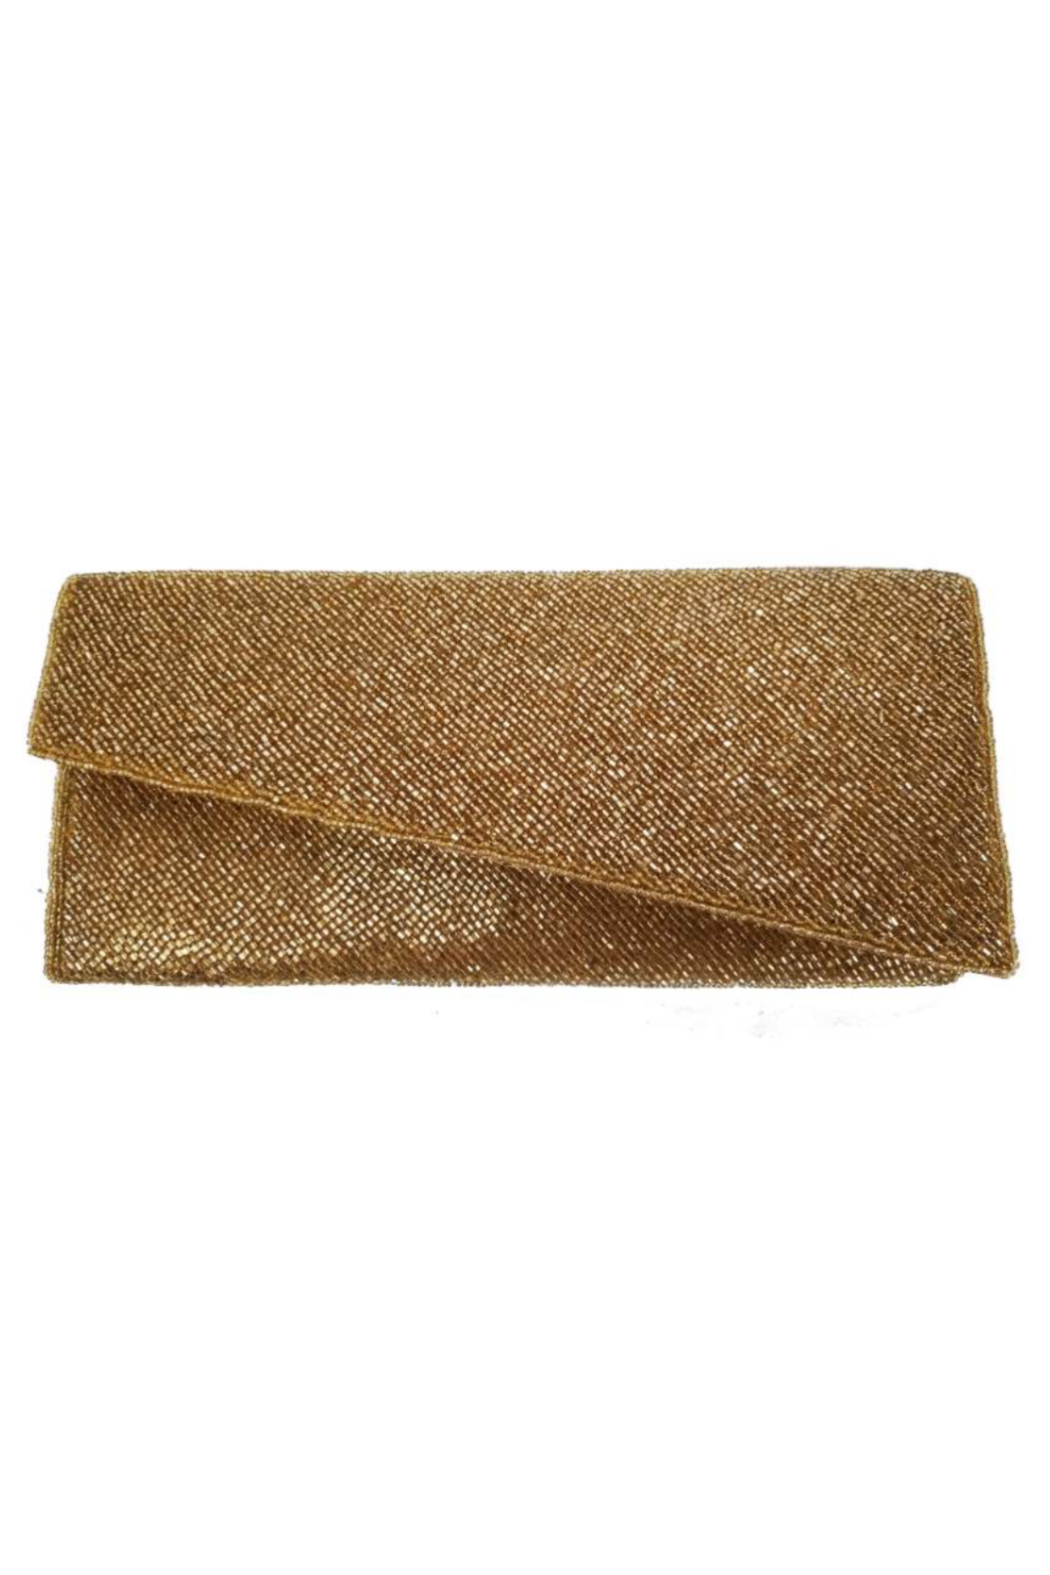 Ricki Designs Gold All Beaded Assymetrical Clutch - Main Image